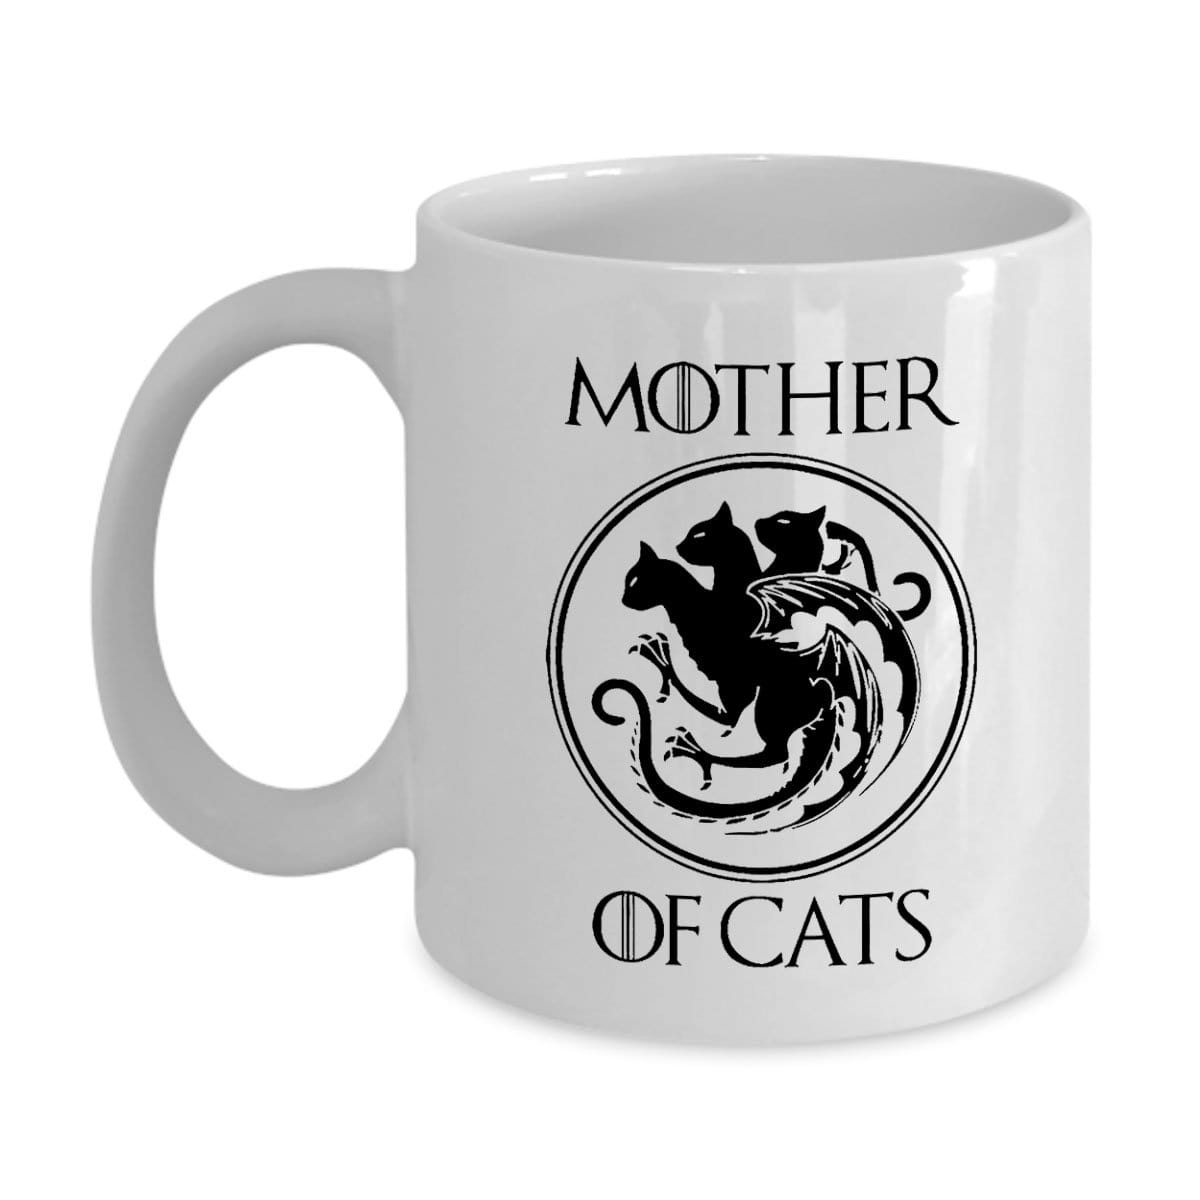 SunFrog-Busted MUG 11oz Mug / White Mother Of Cat Mug